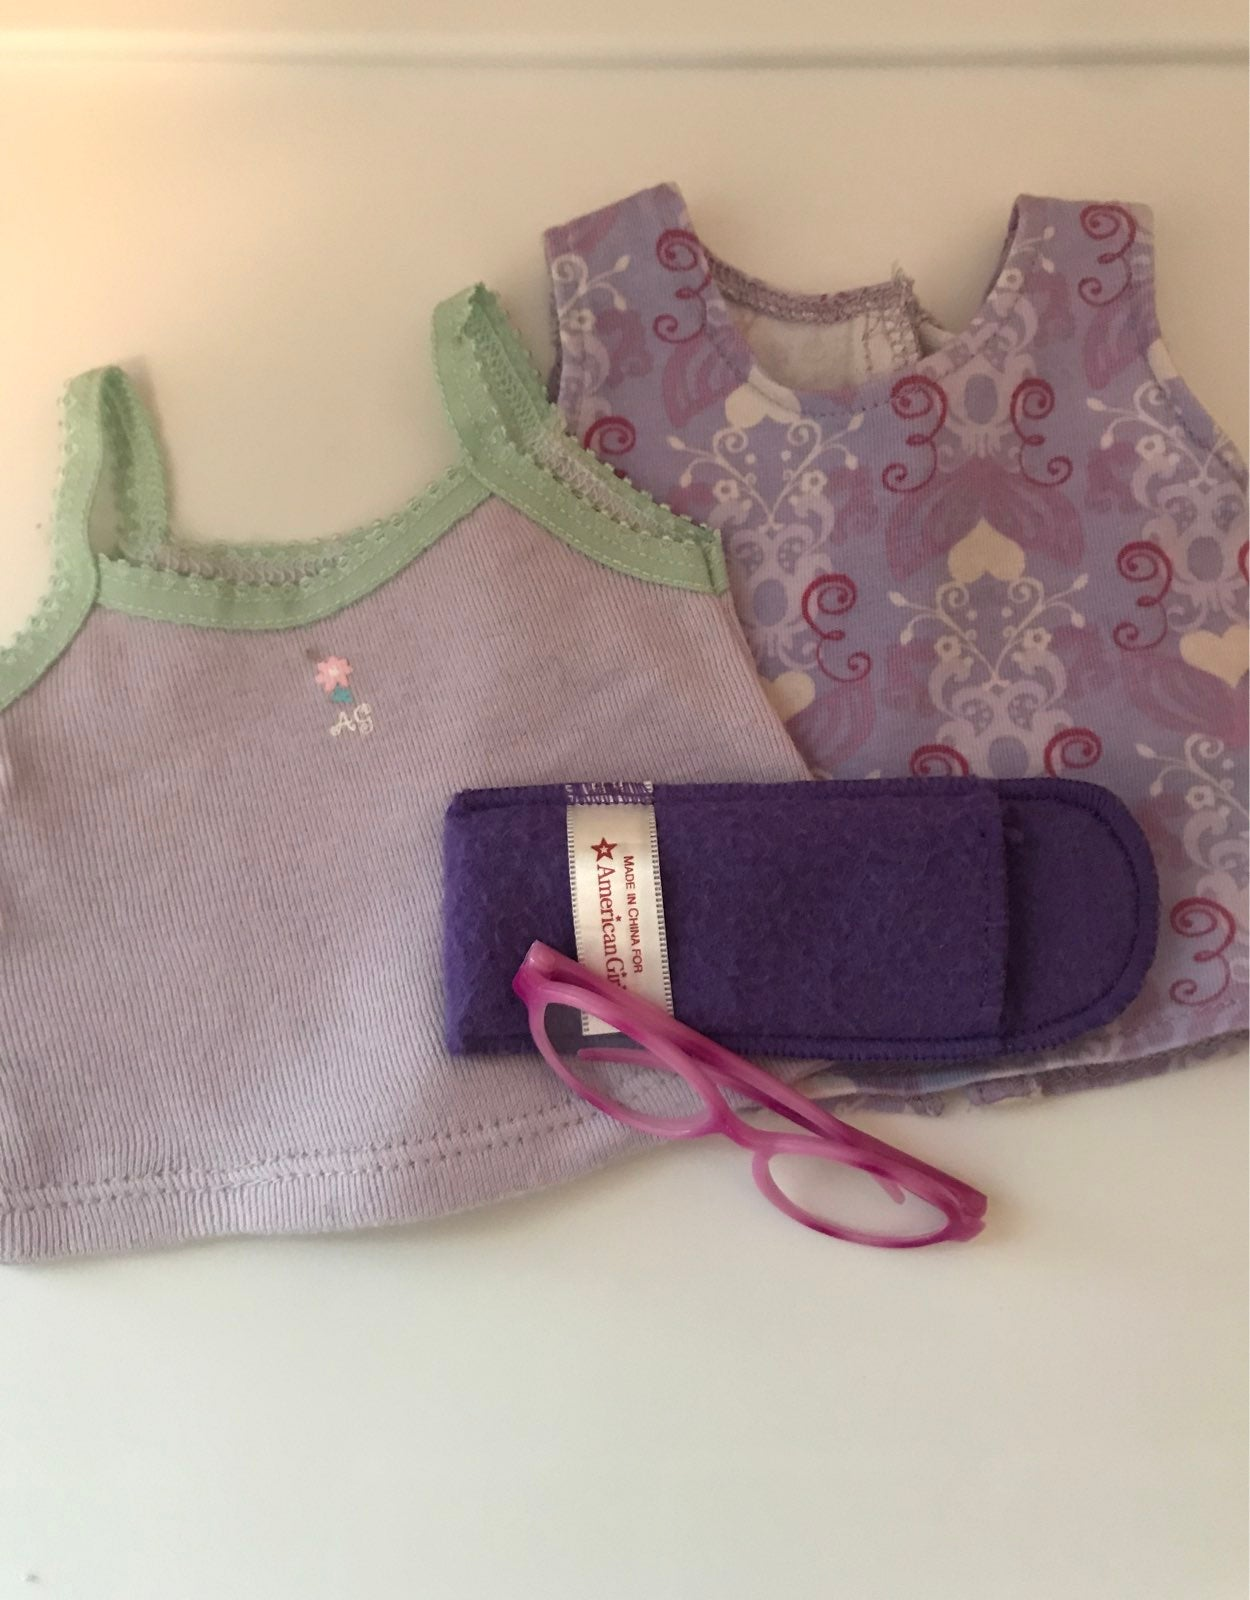 AG Purple CAMI tank top and glasses